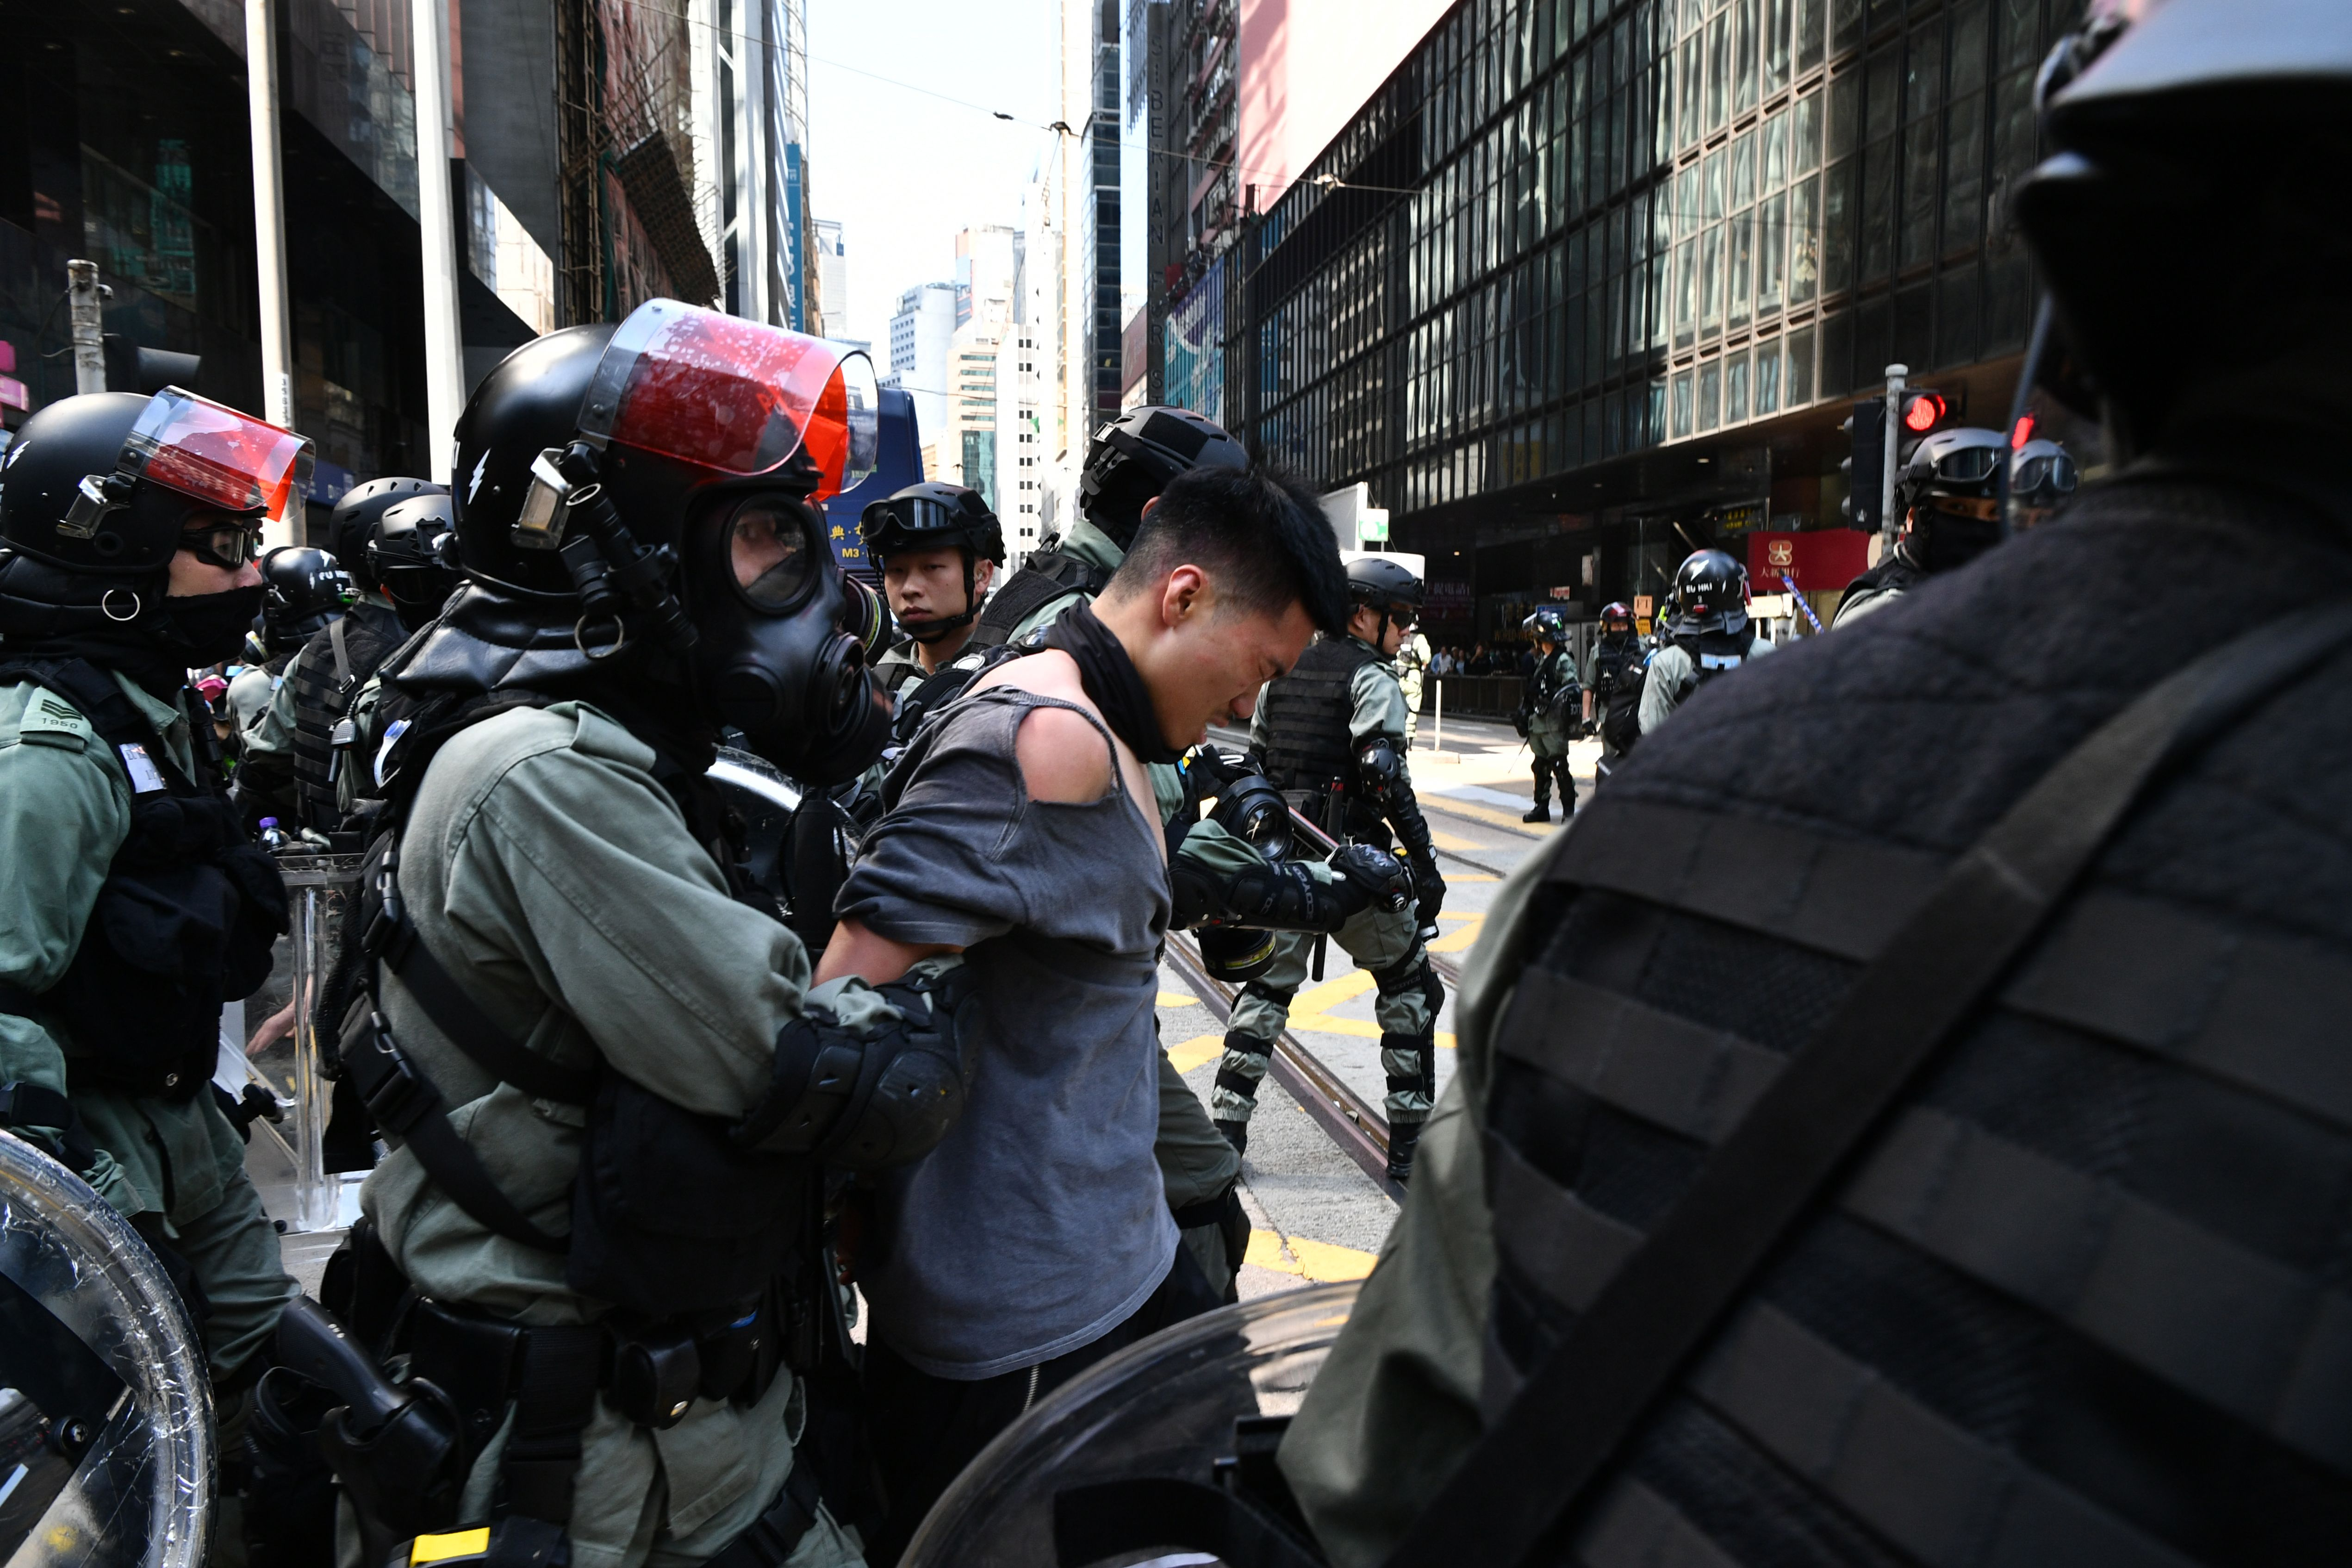 A man is detained by riot police during a protest in Hong Kong on November 11, 2019.